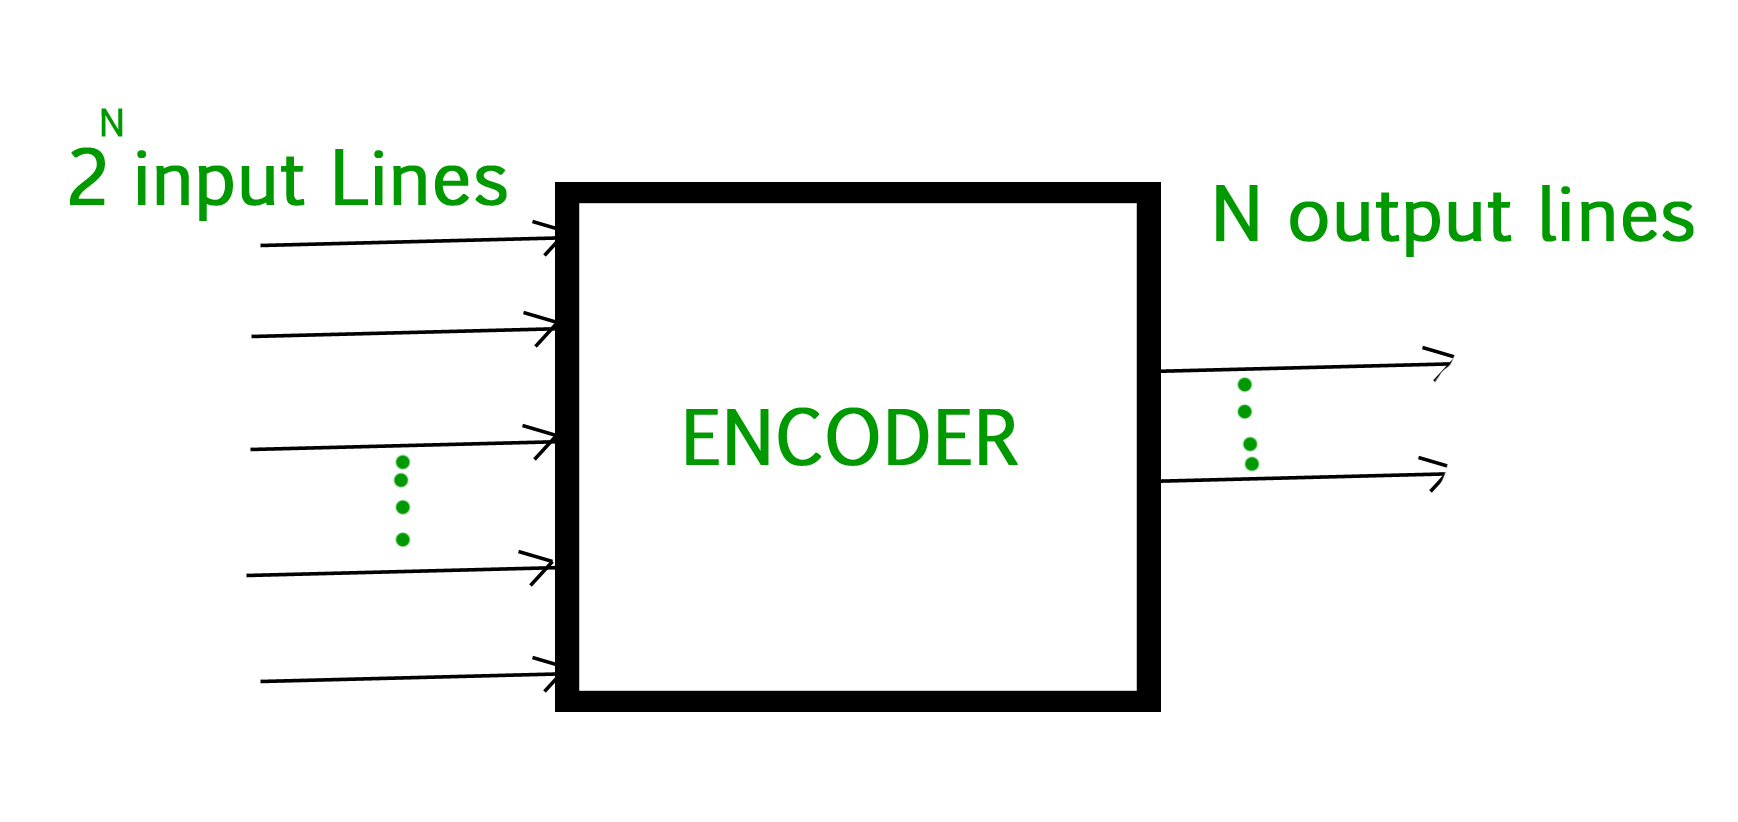 3 8 Decoder Logic Diagram Digital Encoder Geeksforgeeks 4 2